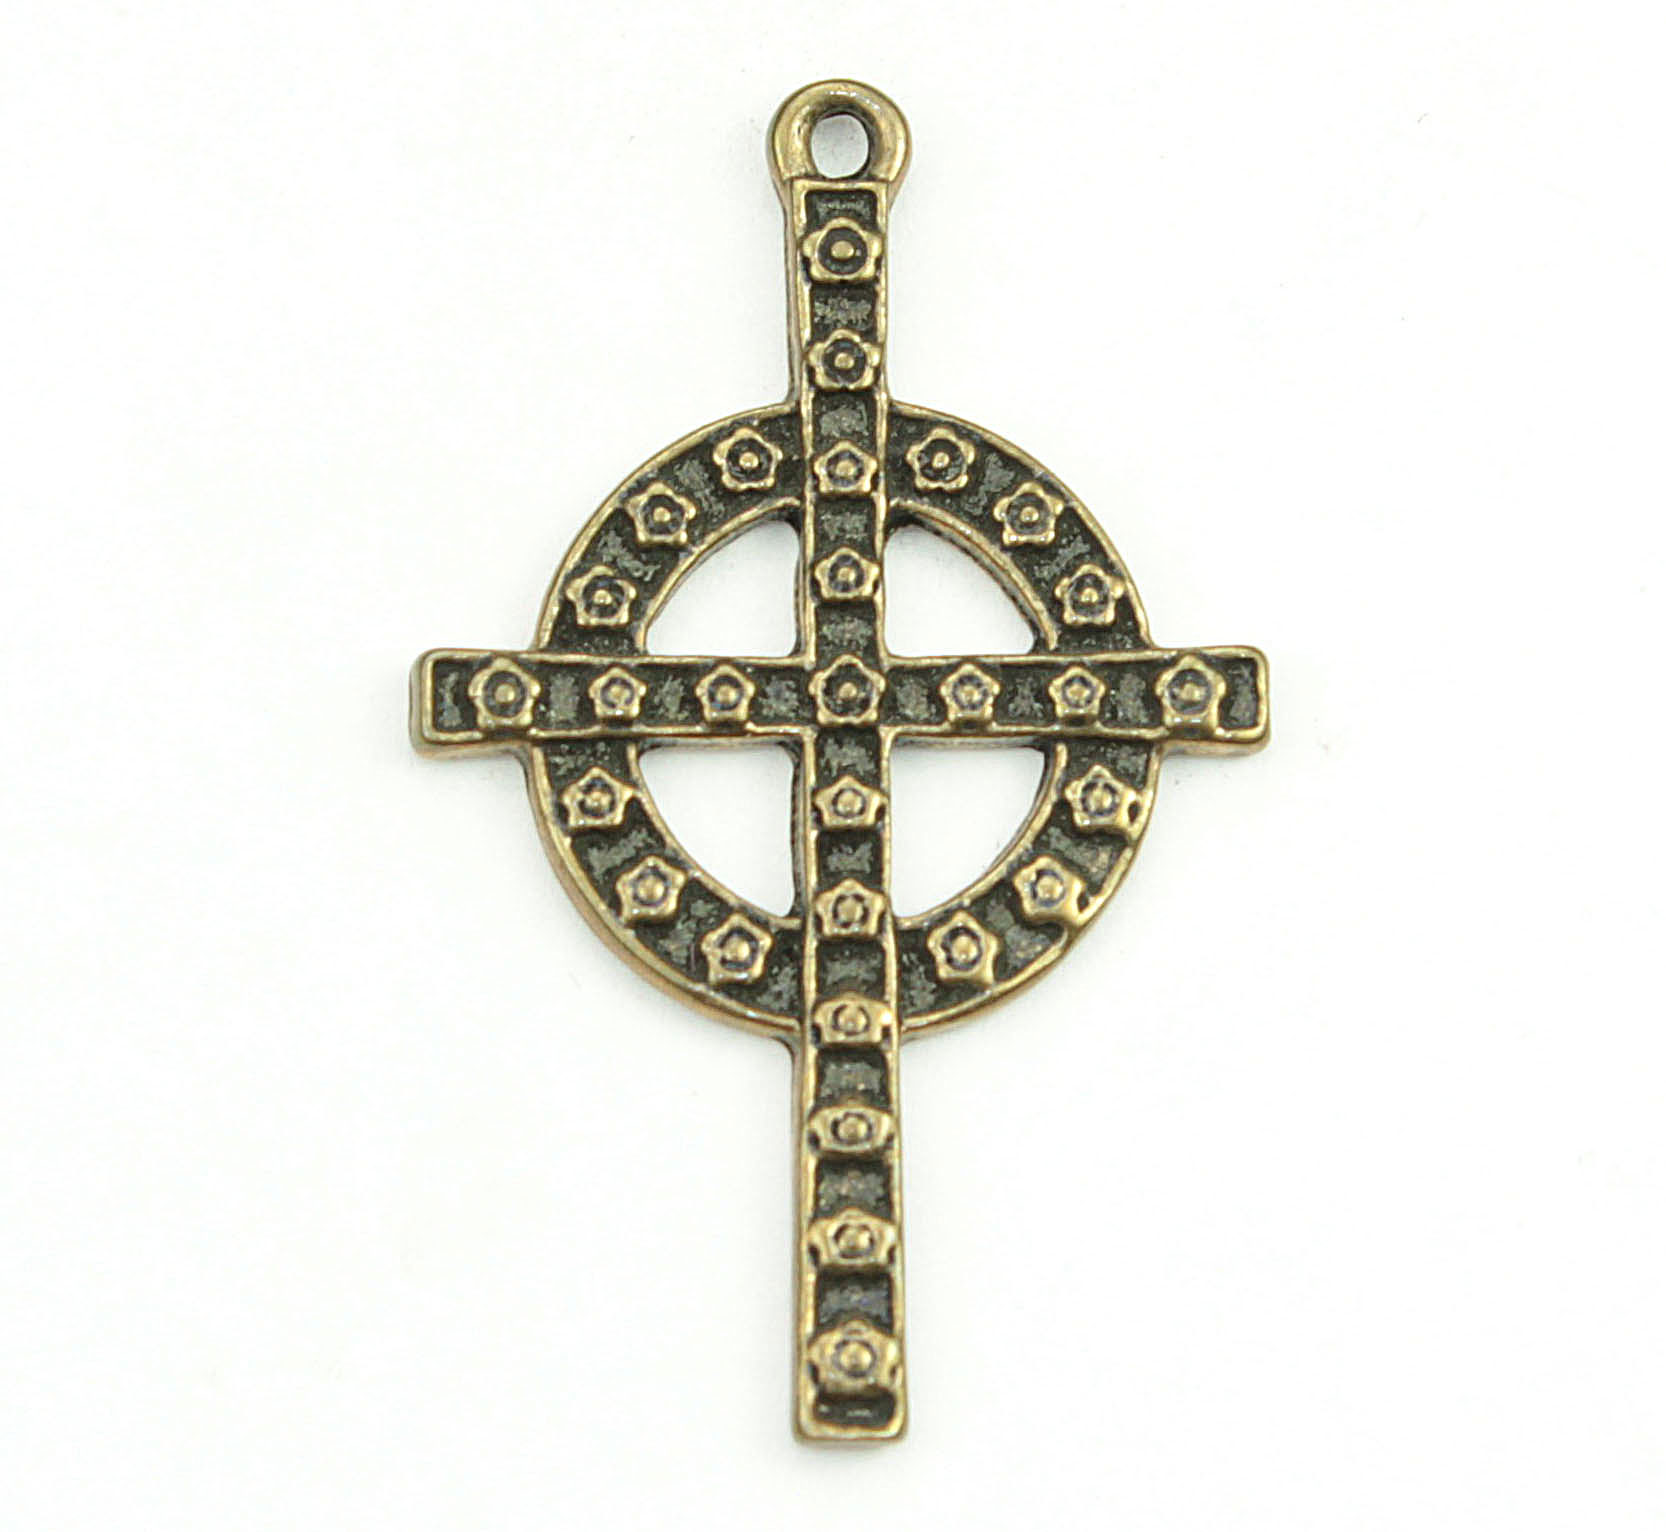 olive wood jonasjrphoto pendant cross with jerusalem wooden carvings holy product rosary land lightbox